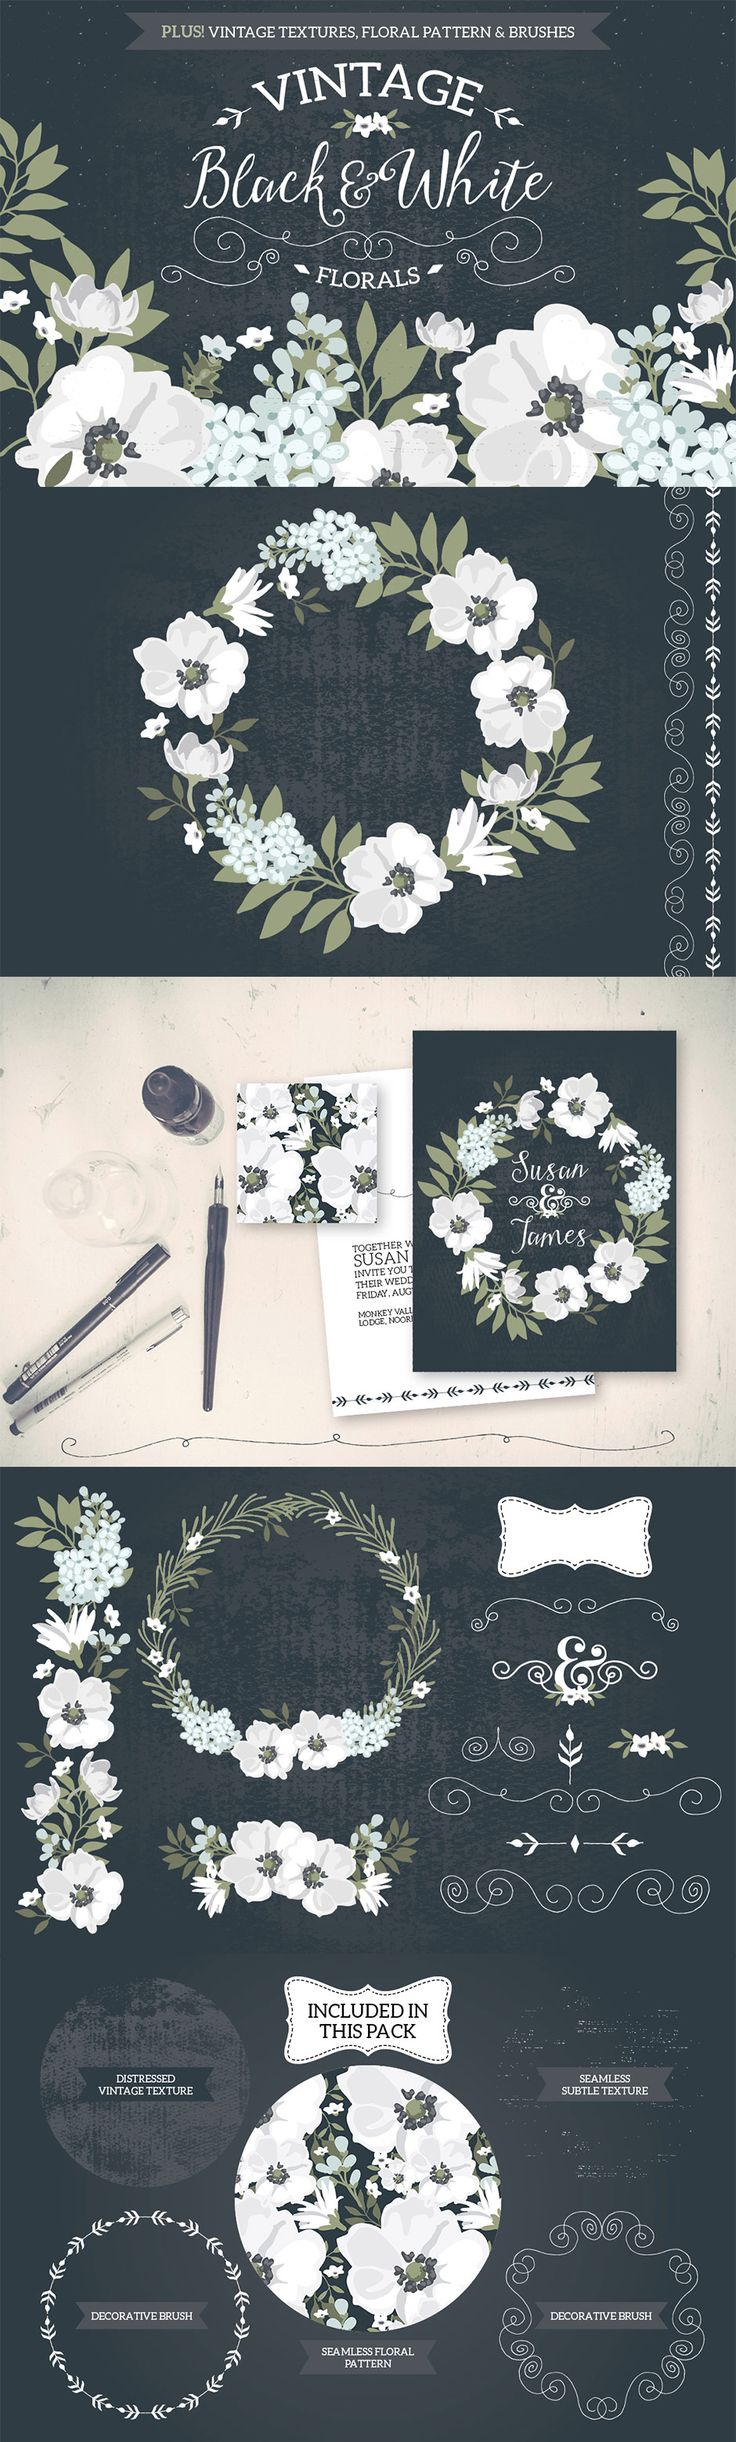 Vintage Black & White Florals by Lisa Glanz | The Comprehensive, Creative Vectors Bundle Mar 2015 from Design Cuts